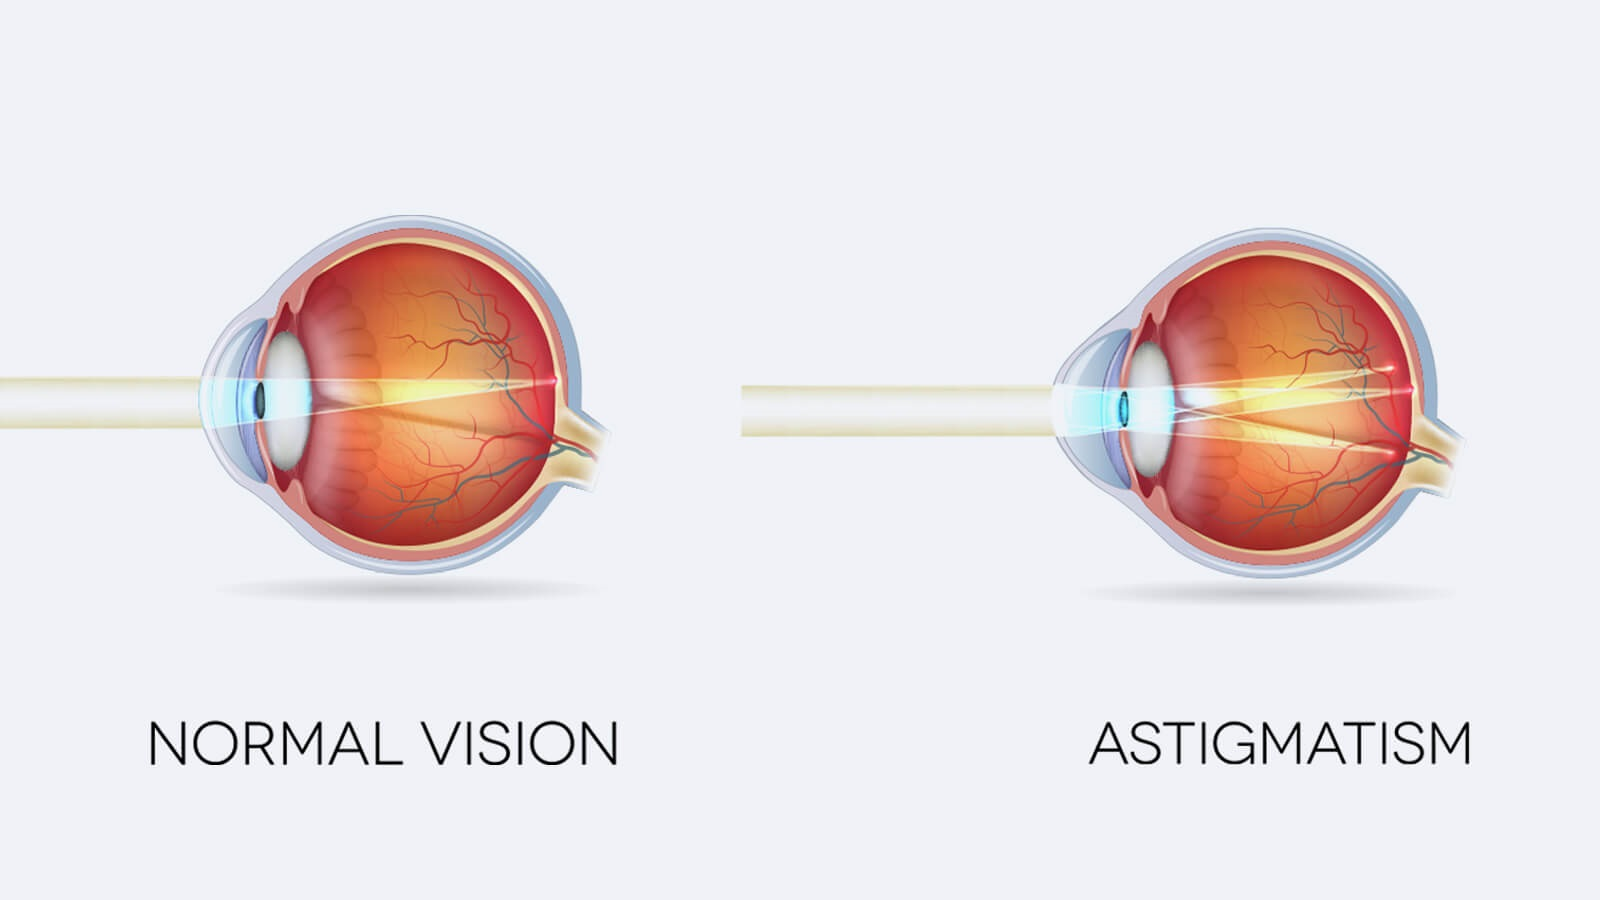 Astigmatism and its effects, symptoms and Treatment